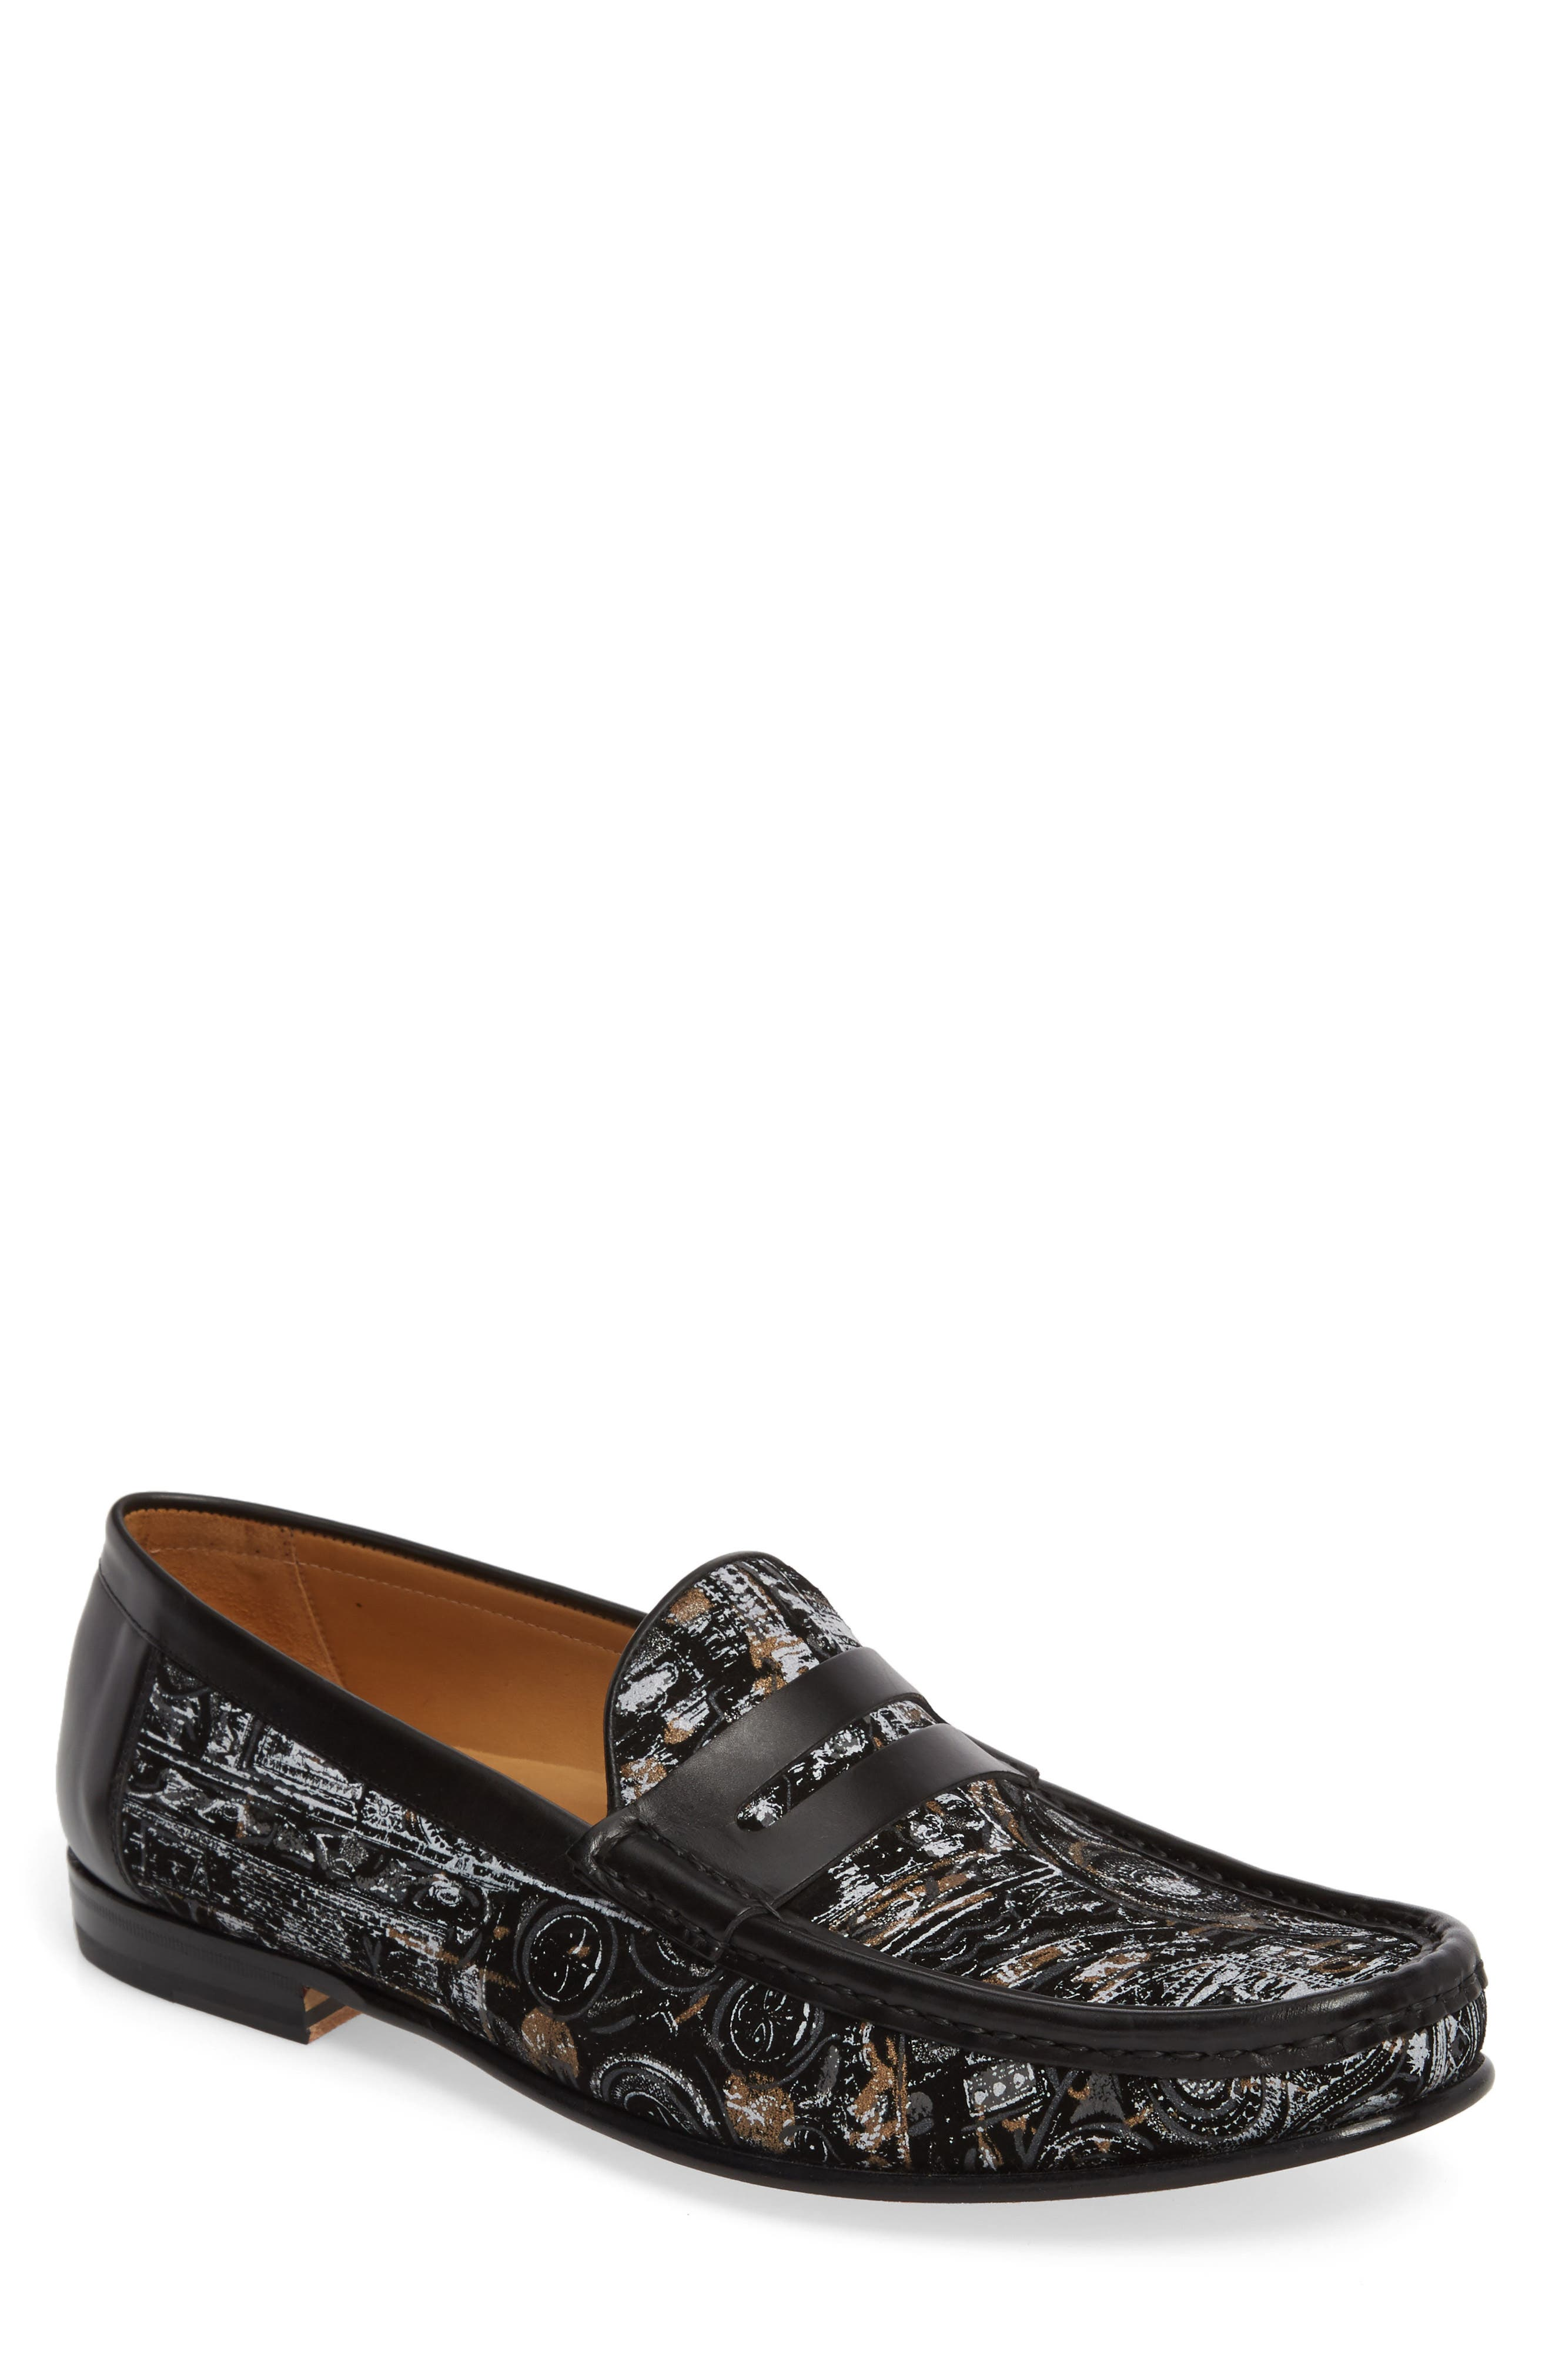 Laries II Penny Loafer,                             Main thumbnail 1, color,                             Black Suede/ Leather